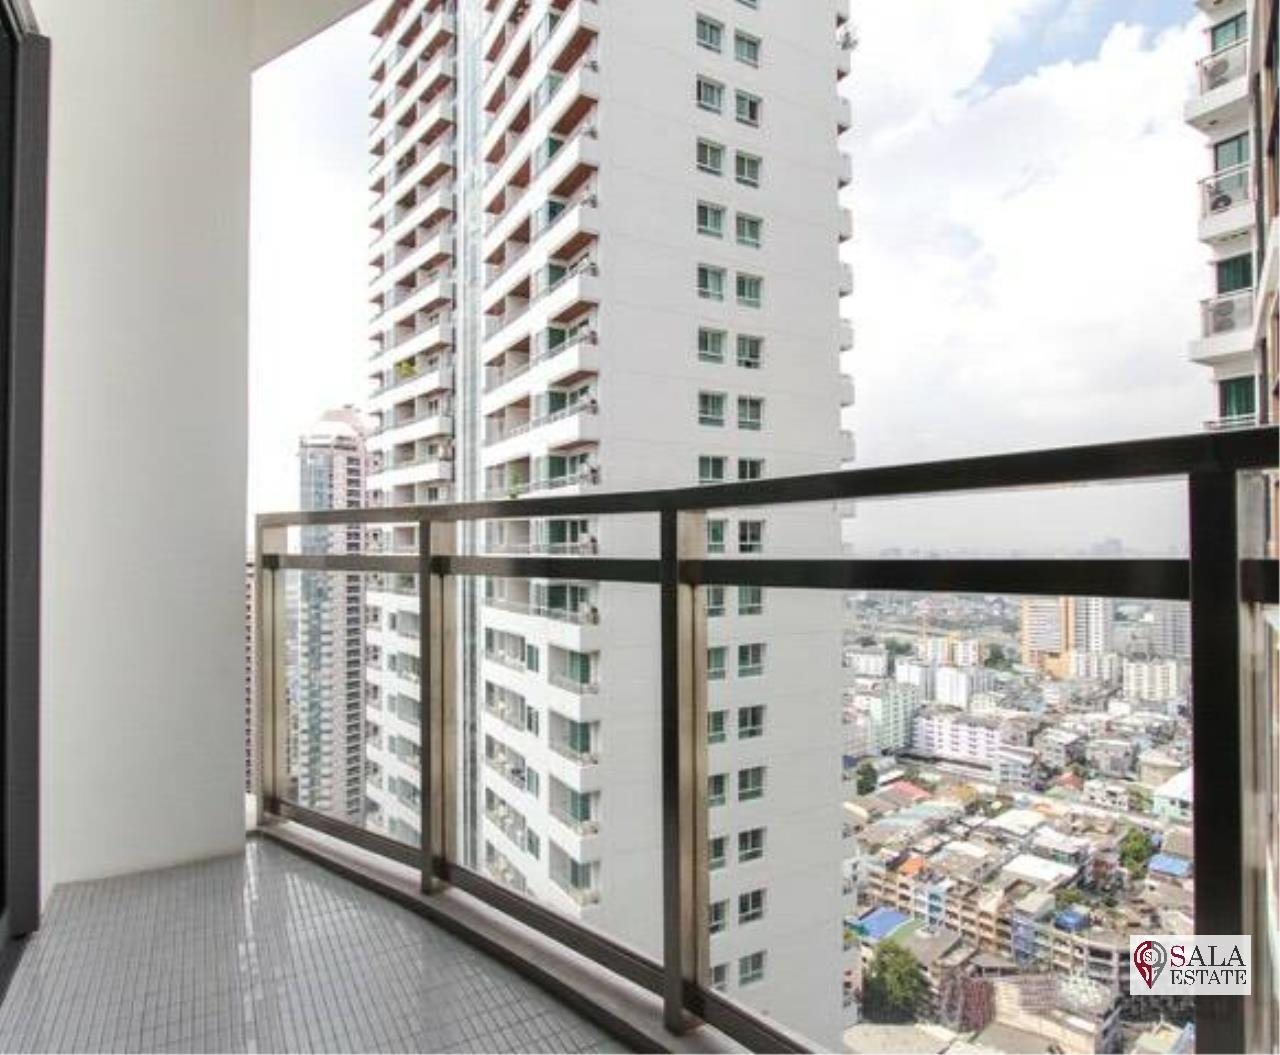 SALA ESTATE Agency's (FOR RENT) BRIGHT SUKHUMVIT 24 - BTS PHROM PHONG, DUPLEX TYPE,3 BEDROOMS 3 BATHROOMS, FULLY FURNISHED,CITY VIEW,HIGH FLOOR 9